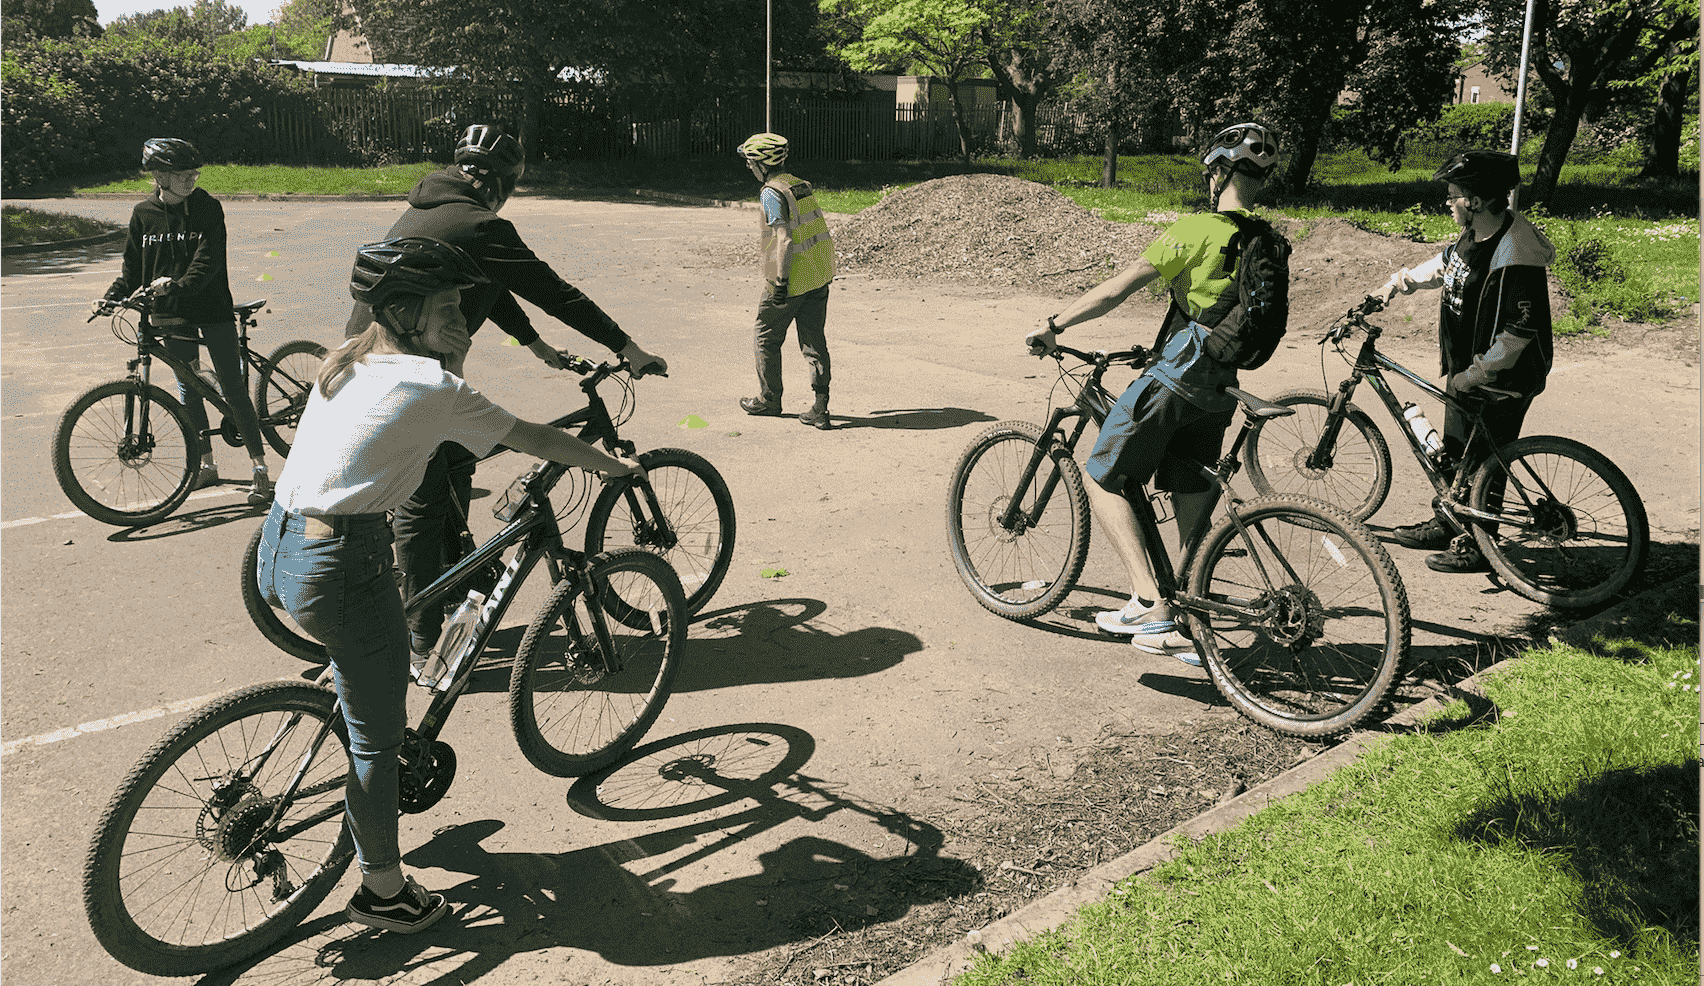 group of cyclists being taught some skills